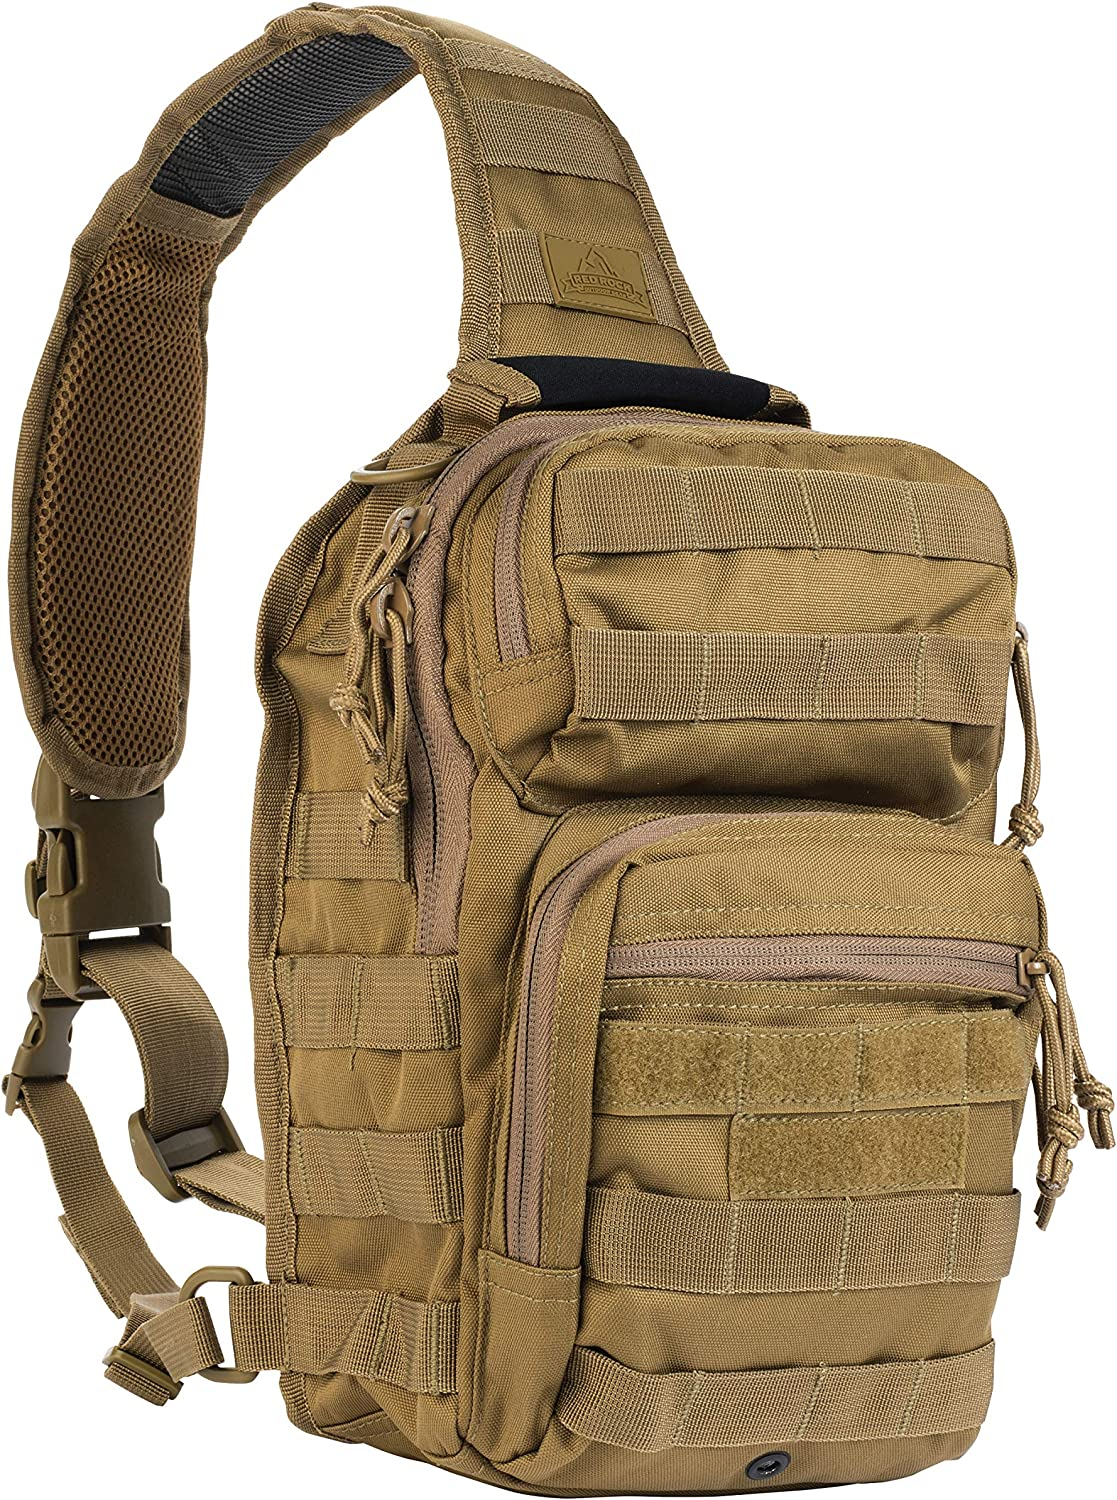 best concealed carry sling bag, Best sling bag for concealed carry, Concealed carry shoulder sling bag, Concealed carry sling bag, sling bag, Sling bag for concealed carry, Tactical tailor concealed carry sling bag